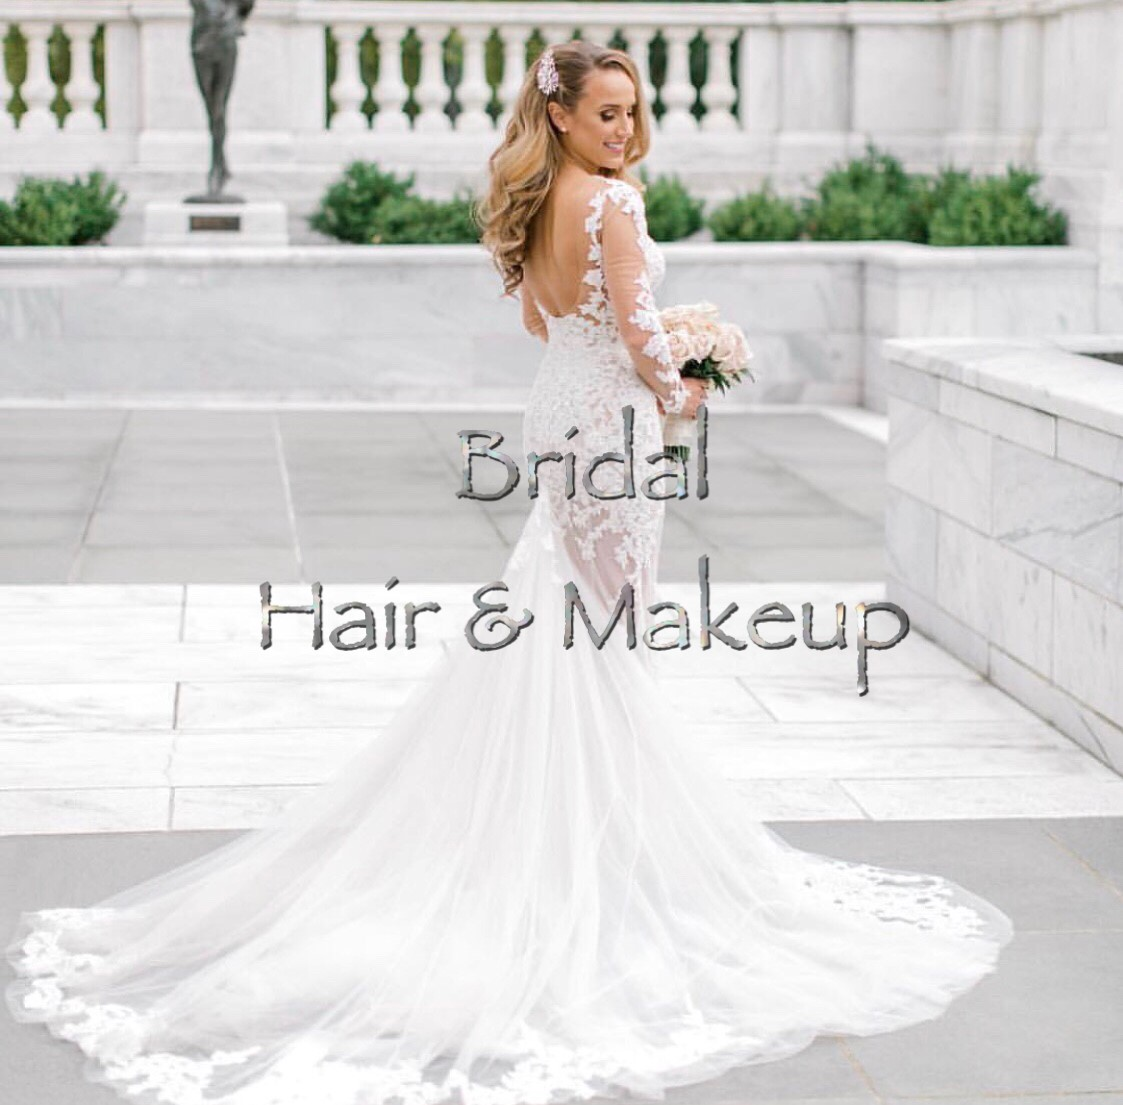 Bridal - It would be an honor to be a part of your special day. Available In-Studio or On-Location for Bridal hair & makeup